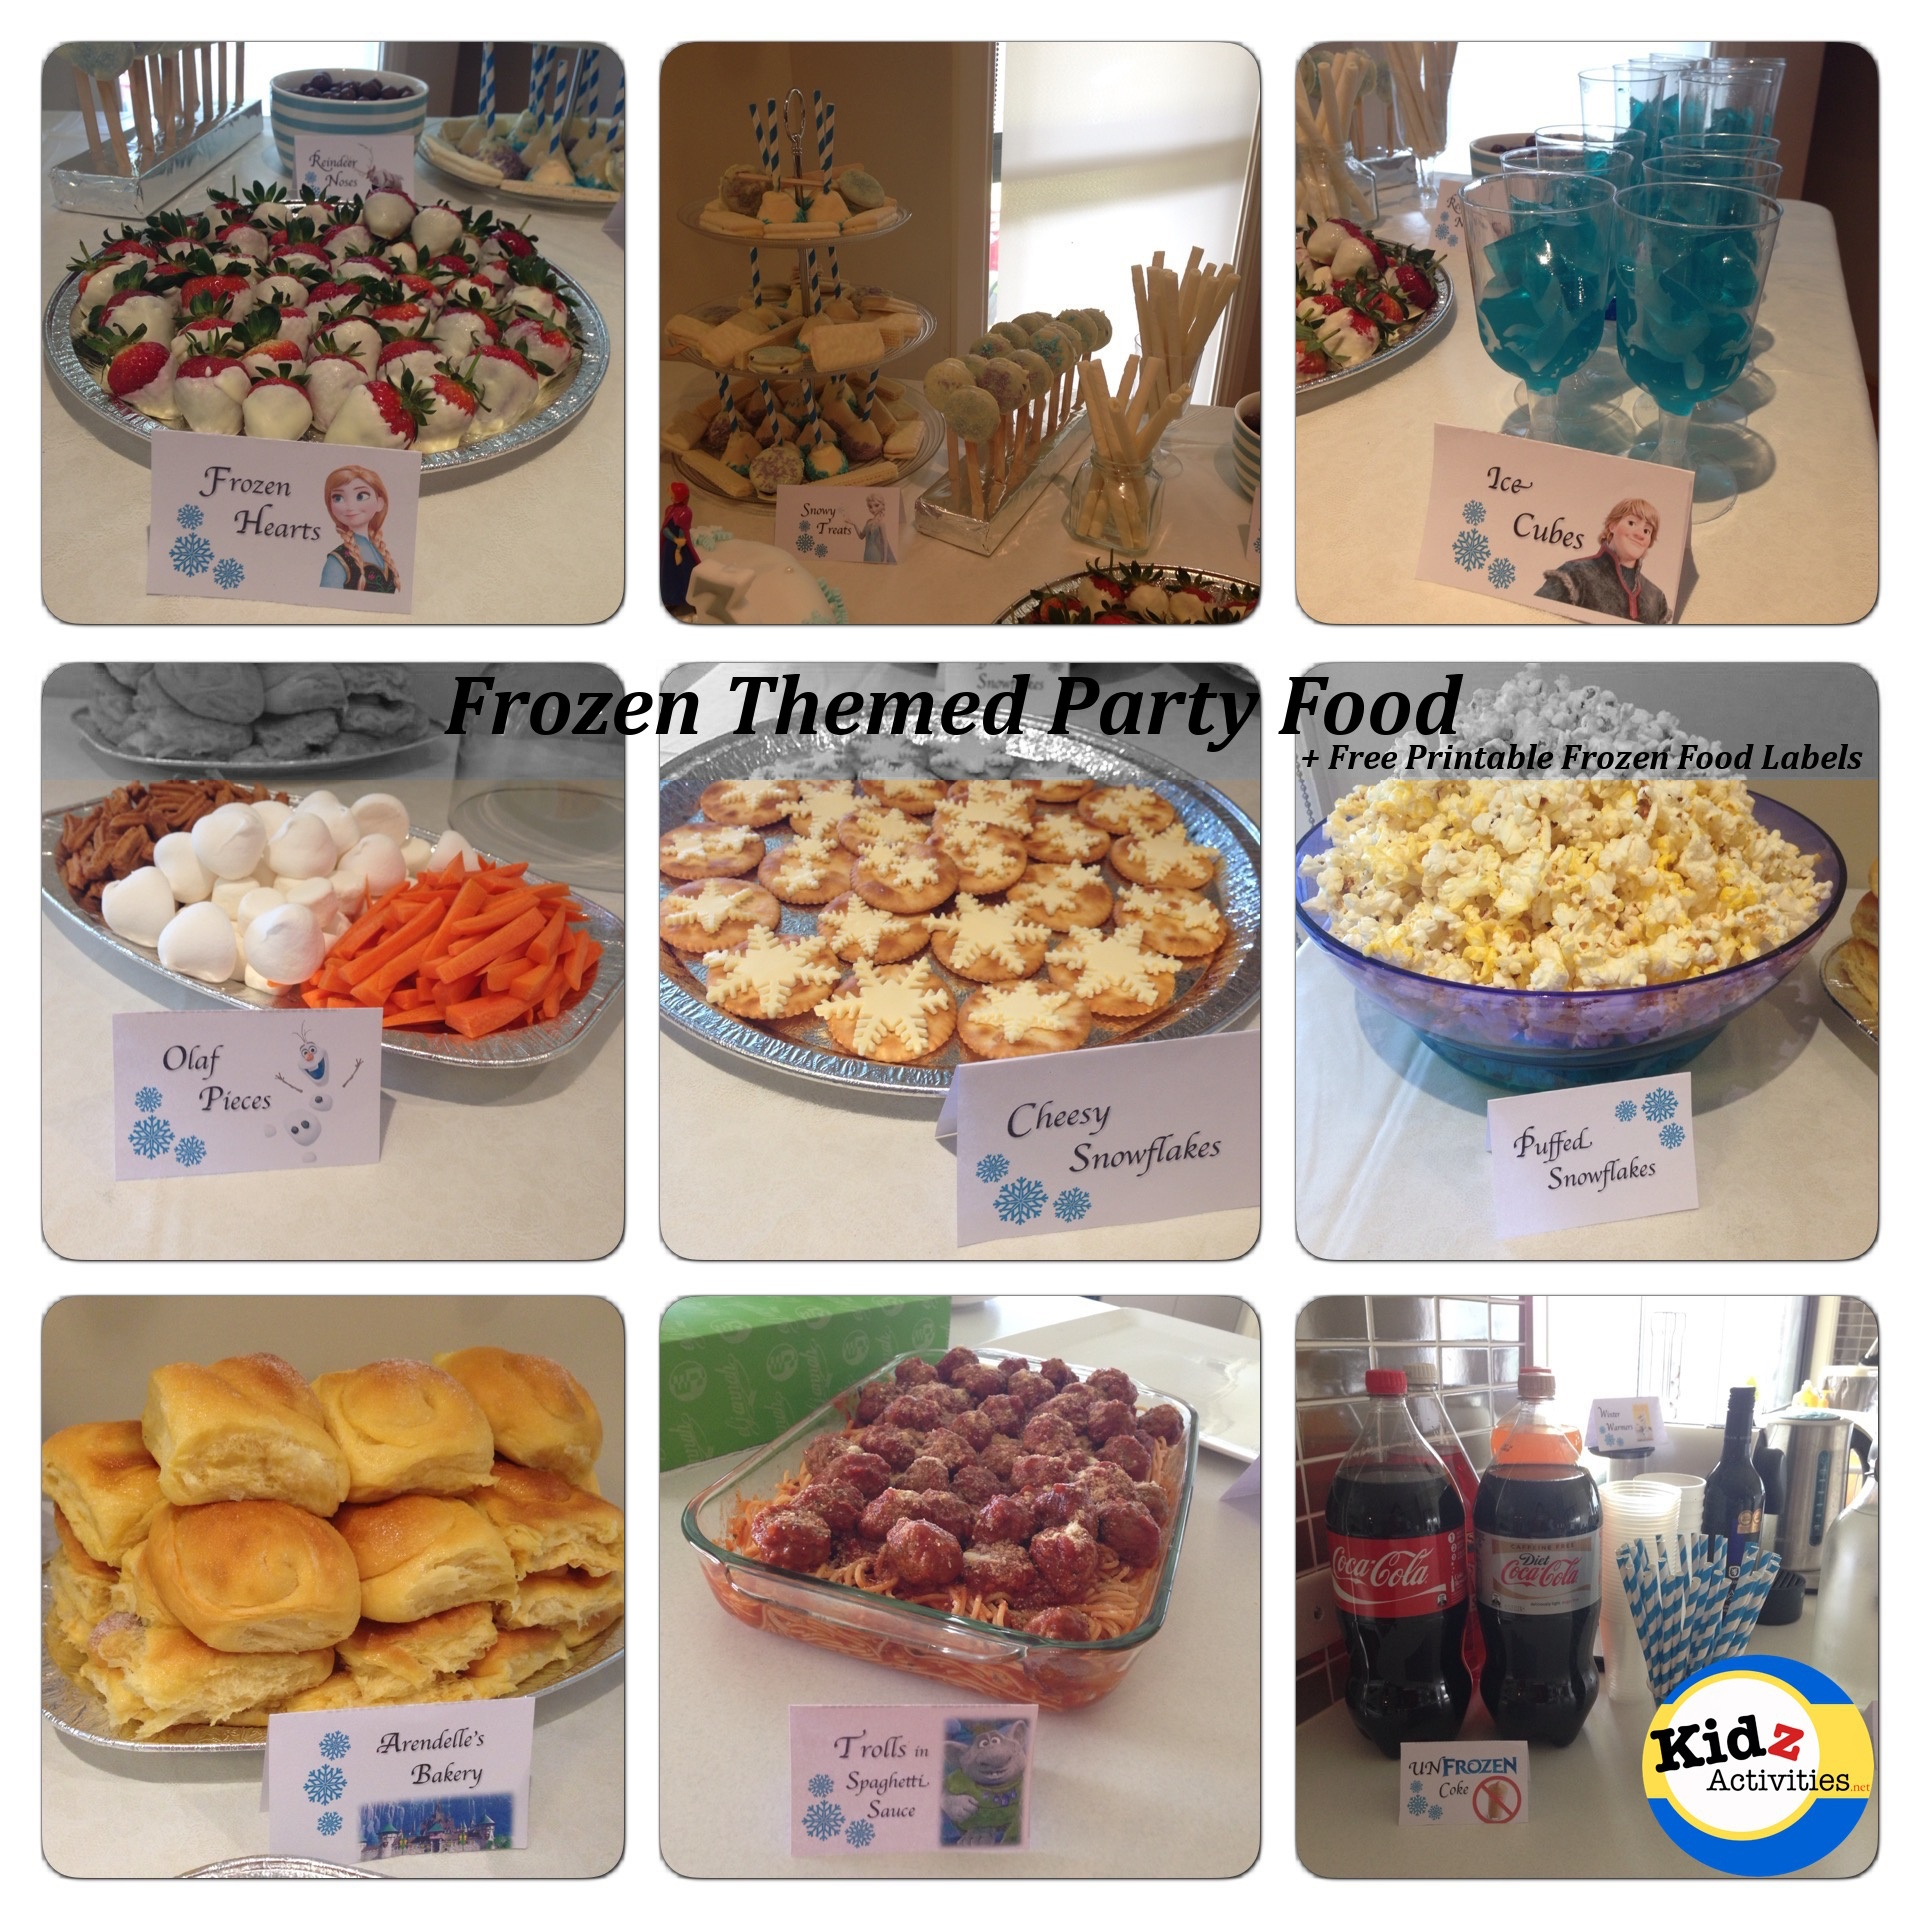 Frozen Themed Party Food - Free Printable Food Labels - Kidz Activities - Free Printable Cars Food Labels